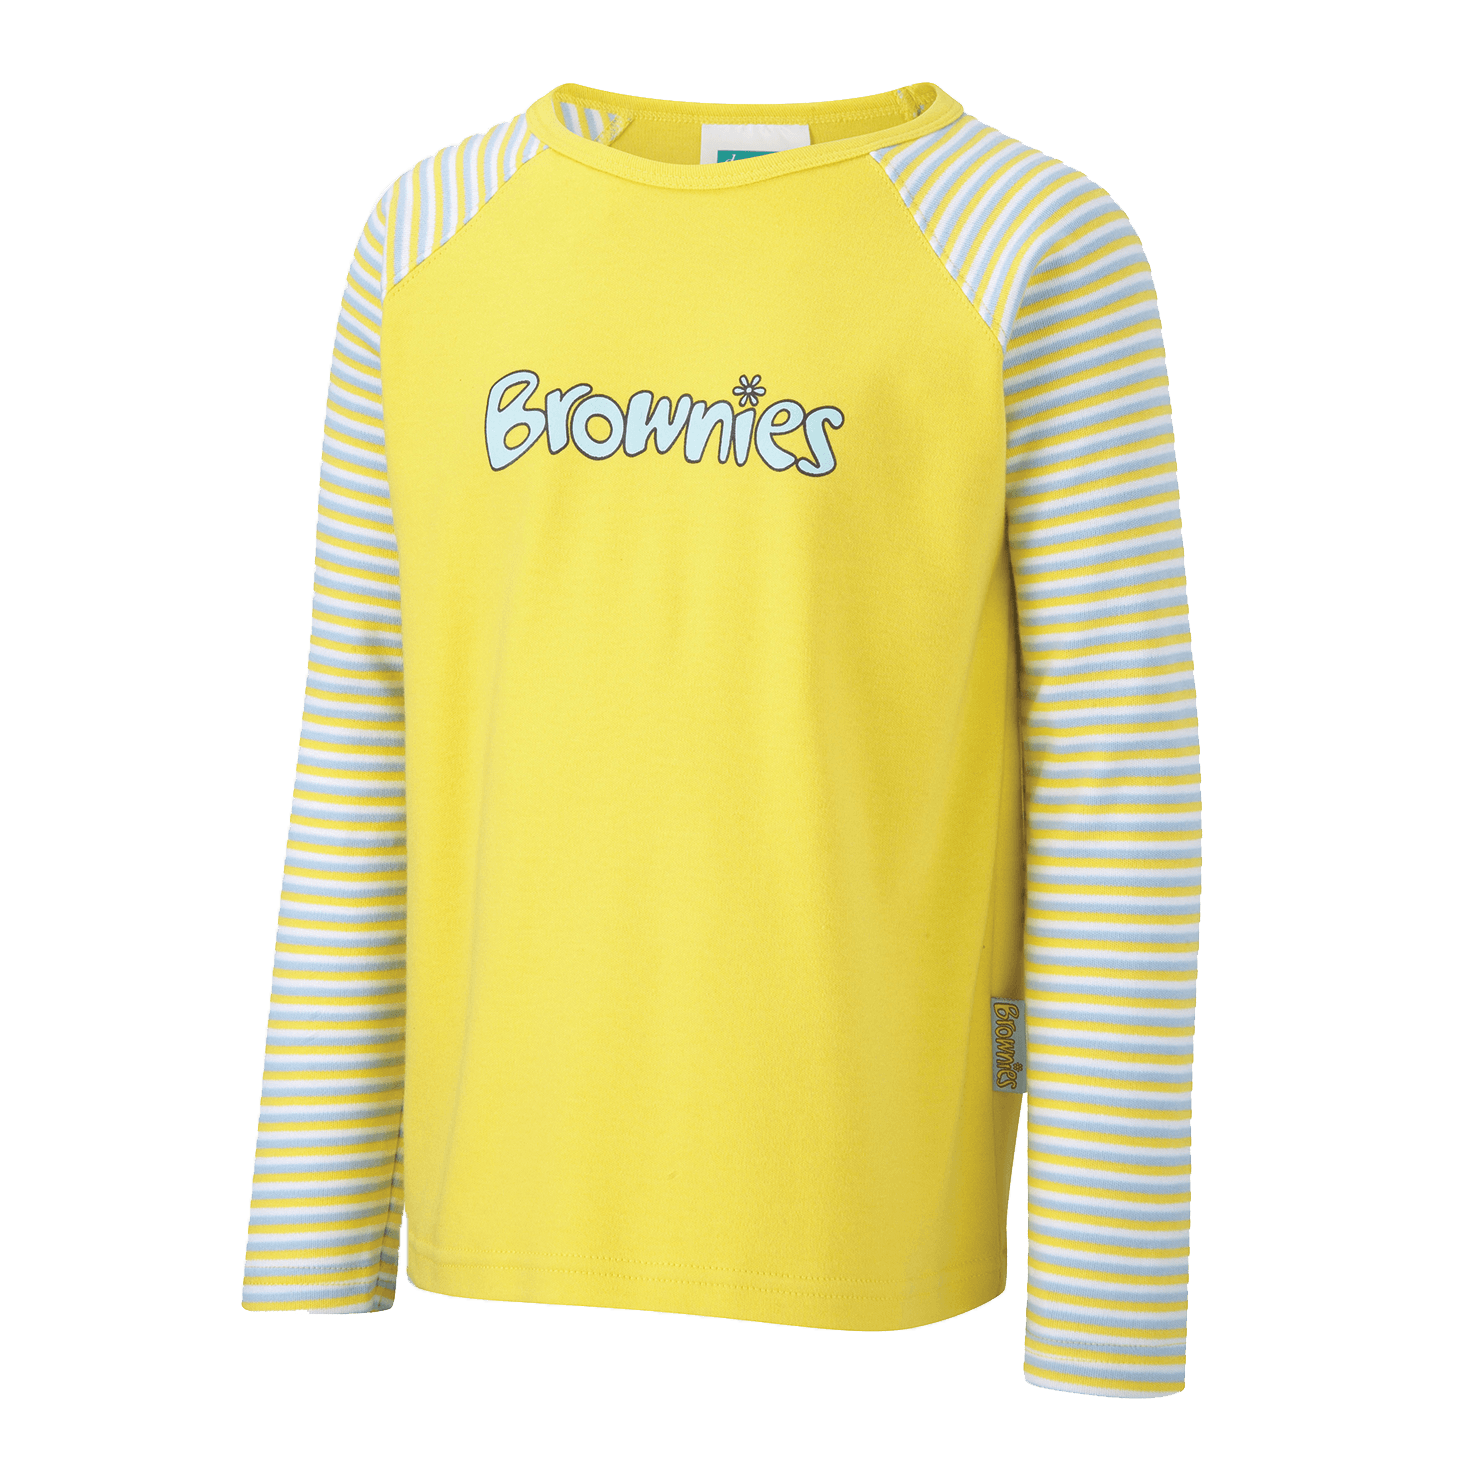 Brownie Long Sleeve T-shirt - Swifts Uniforms